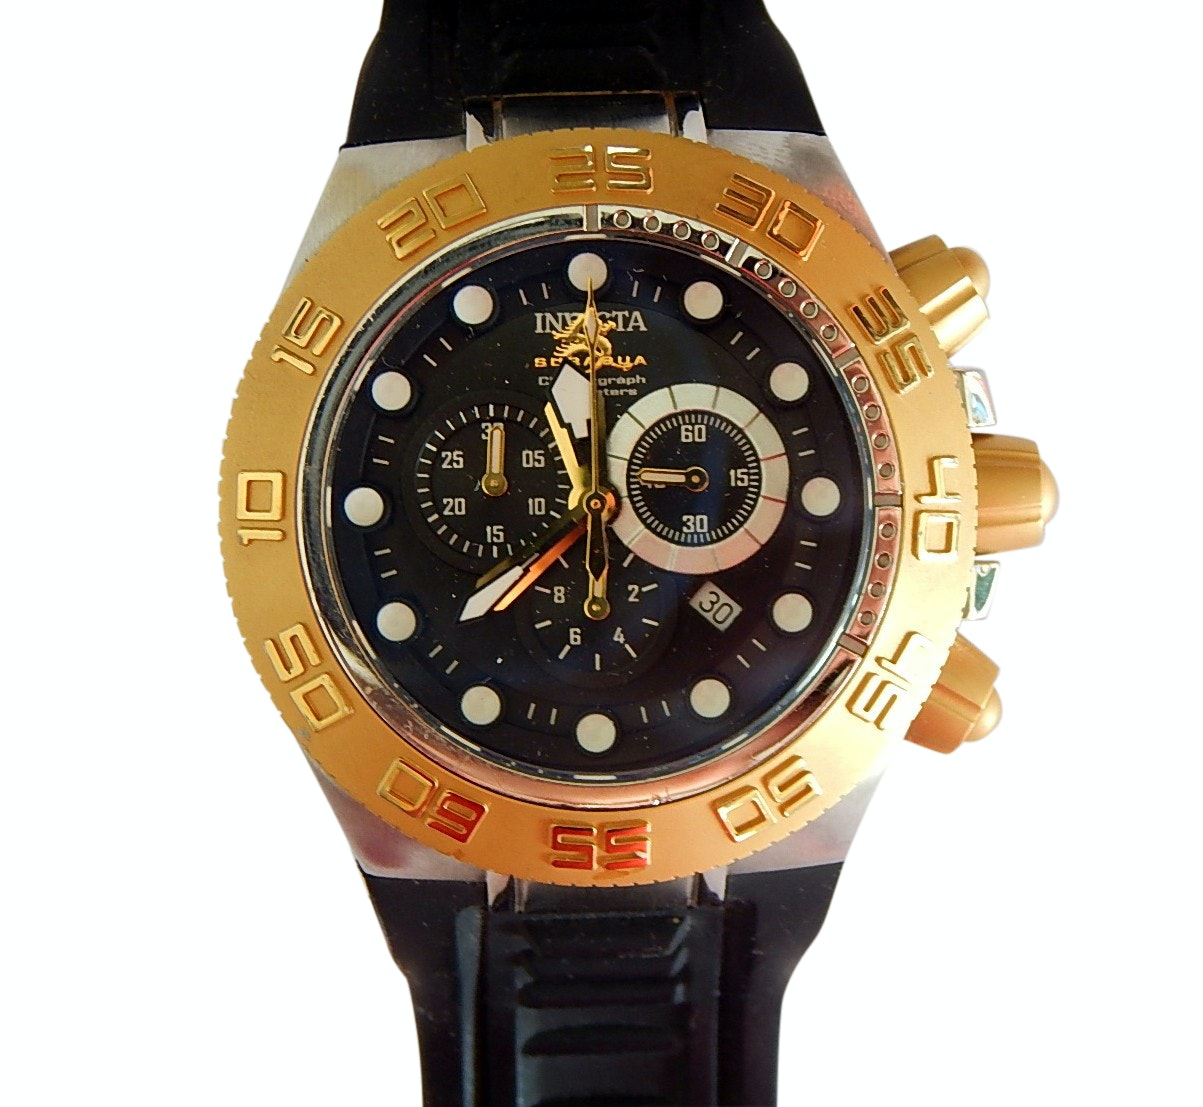 Invicta Gold-Tone/Black Chronograph Subaqua Sport Model Wristwatch Model 1531